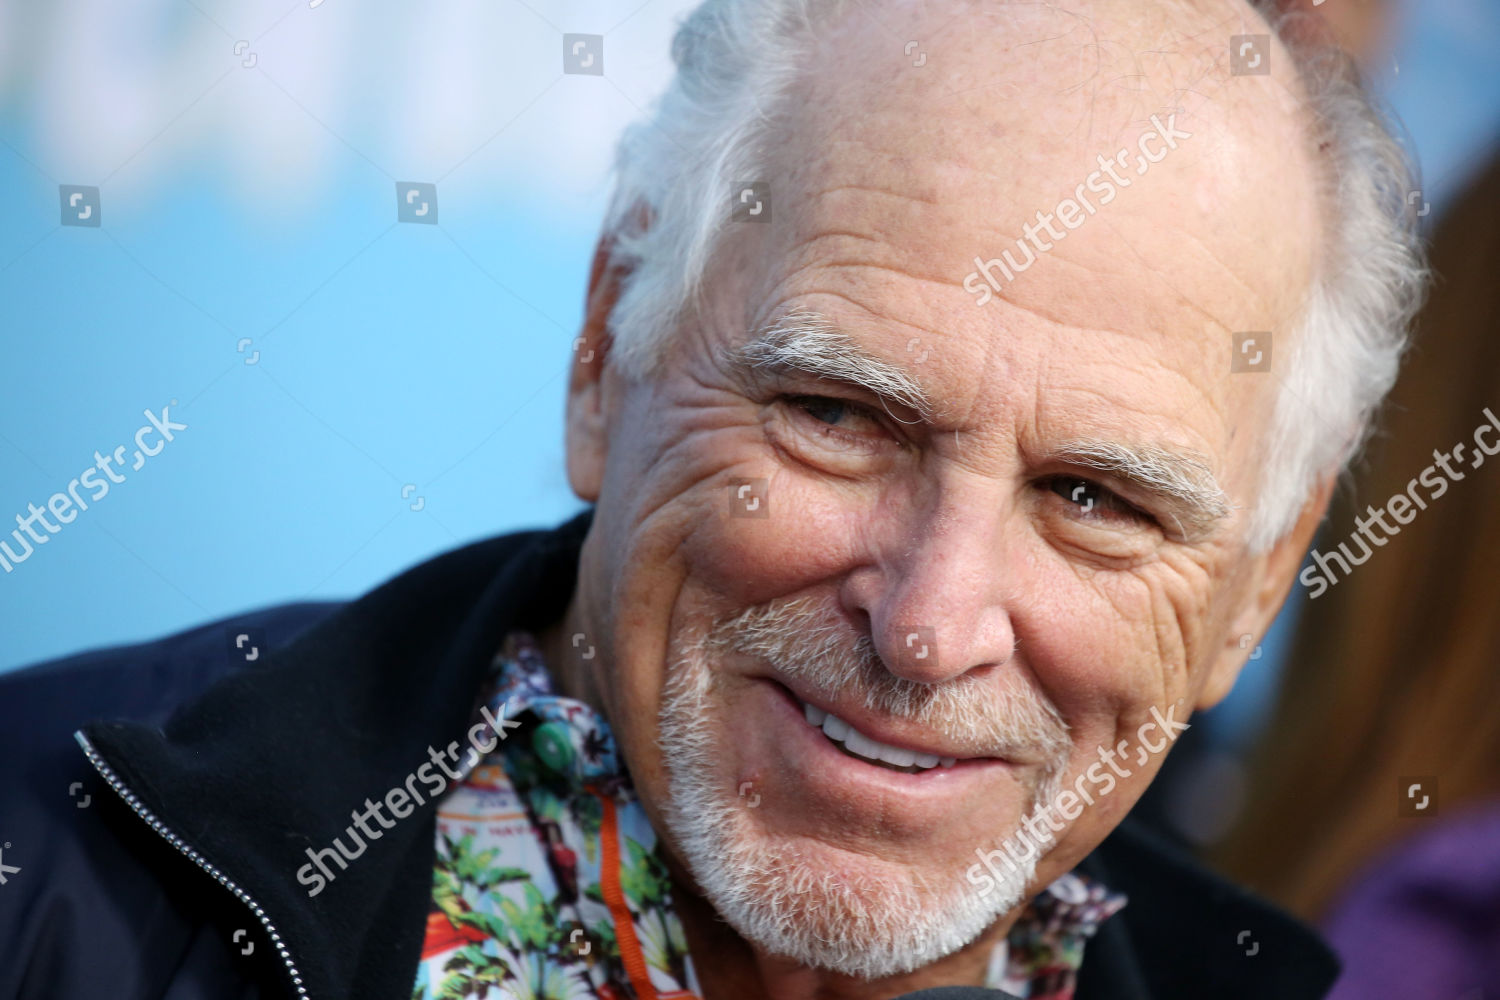 Jimmy Buffett Editorial Stock Photo - Stock Image | Shutterstock